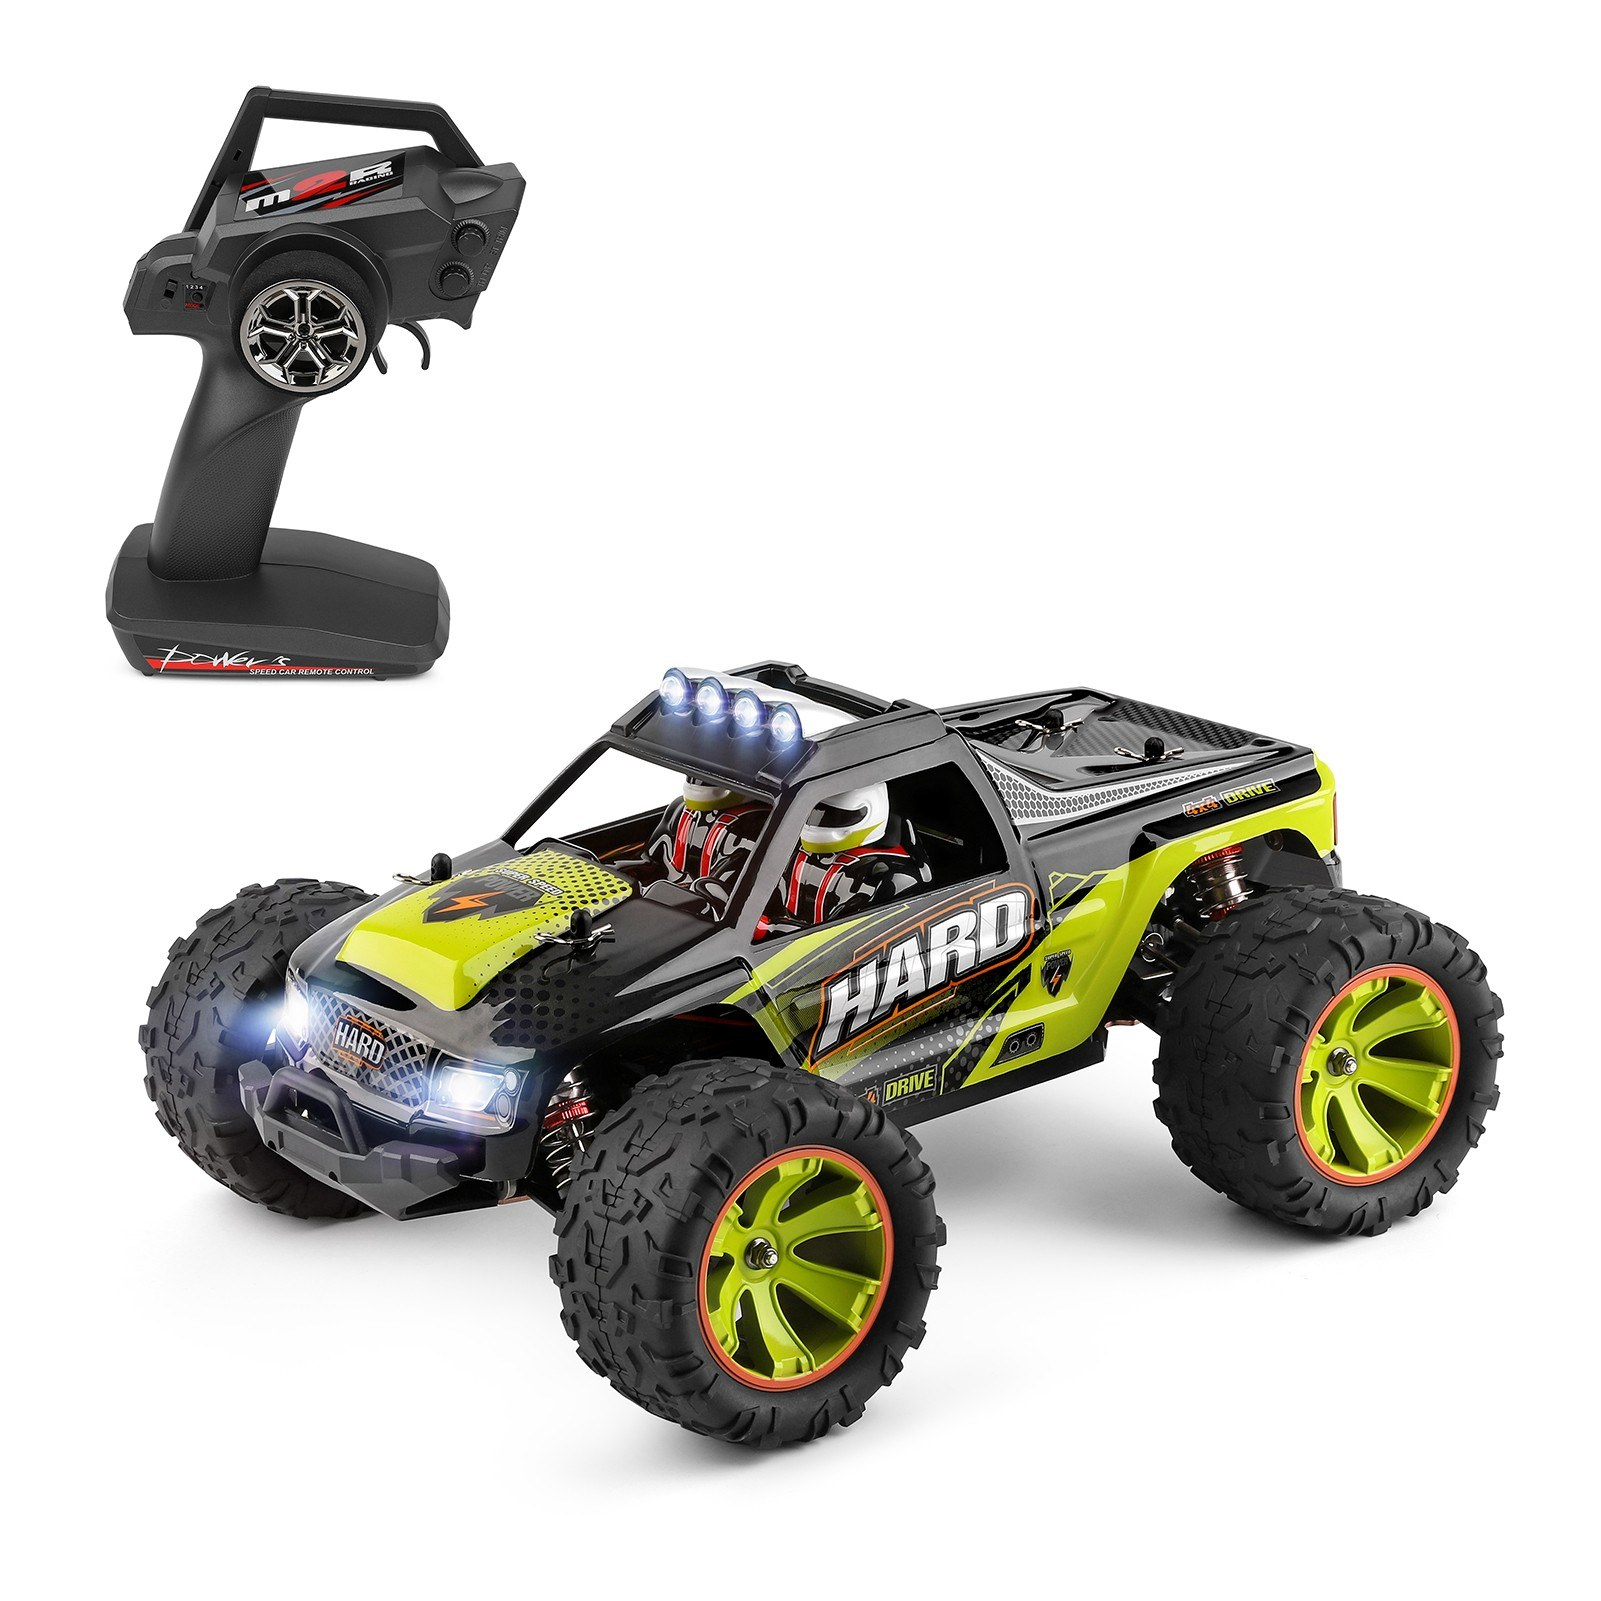 Tomtop - 59% OFF WLtoys 144002 2.4GHz Off-Road Car, $109 (Inclusive of VAT)